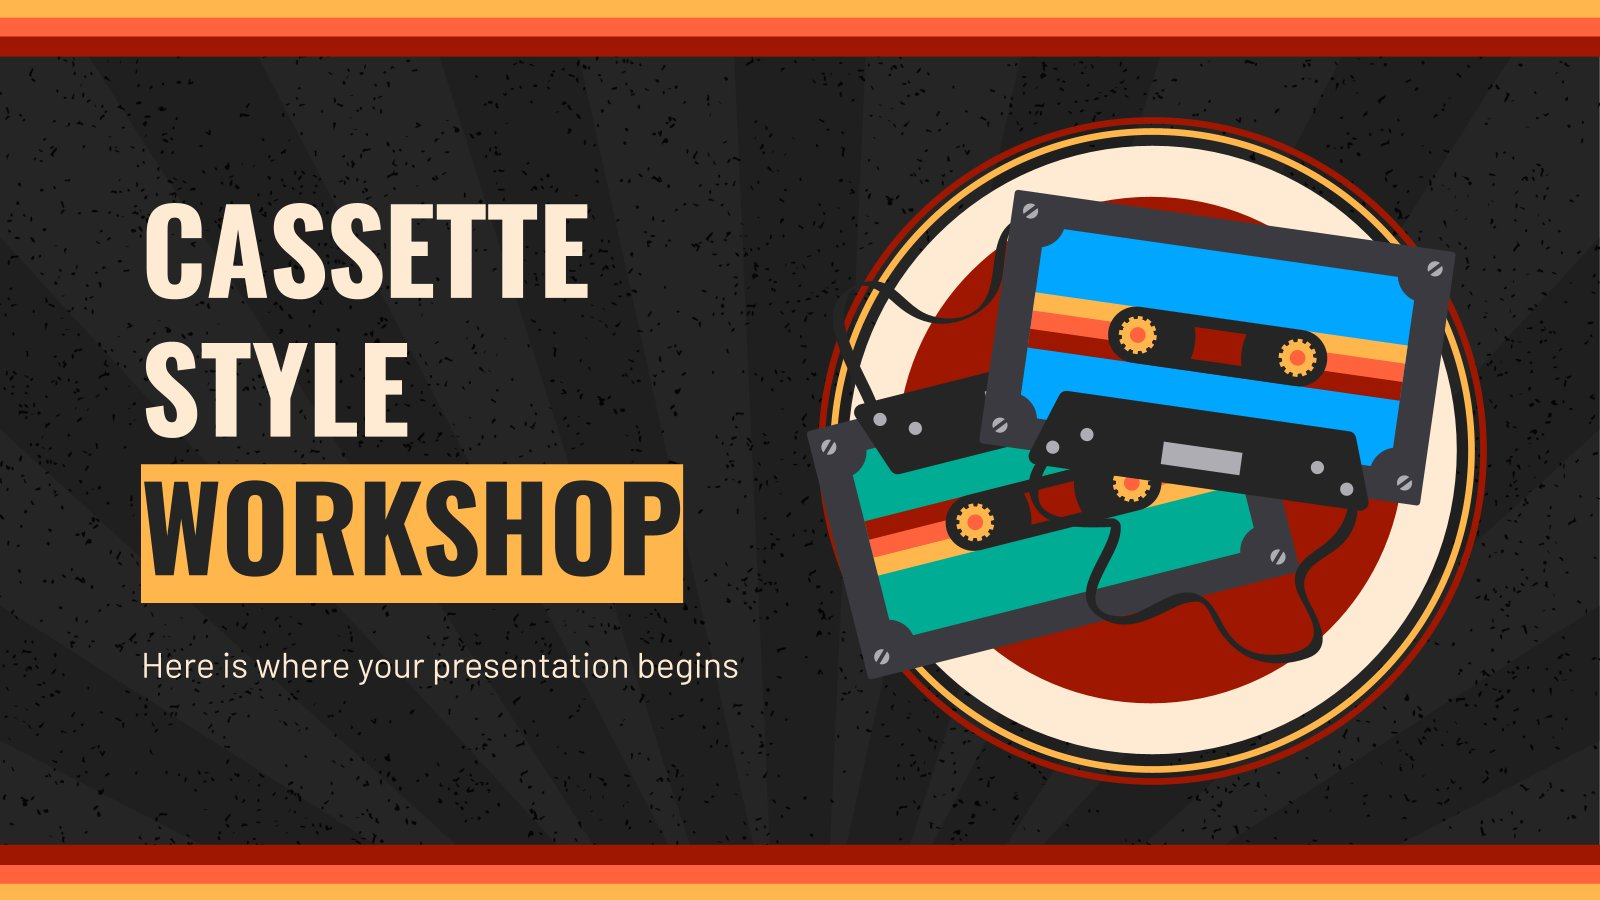 Cassette Style Workshop presentation template